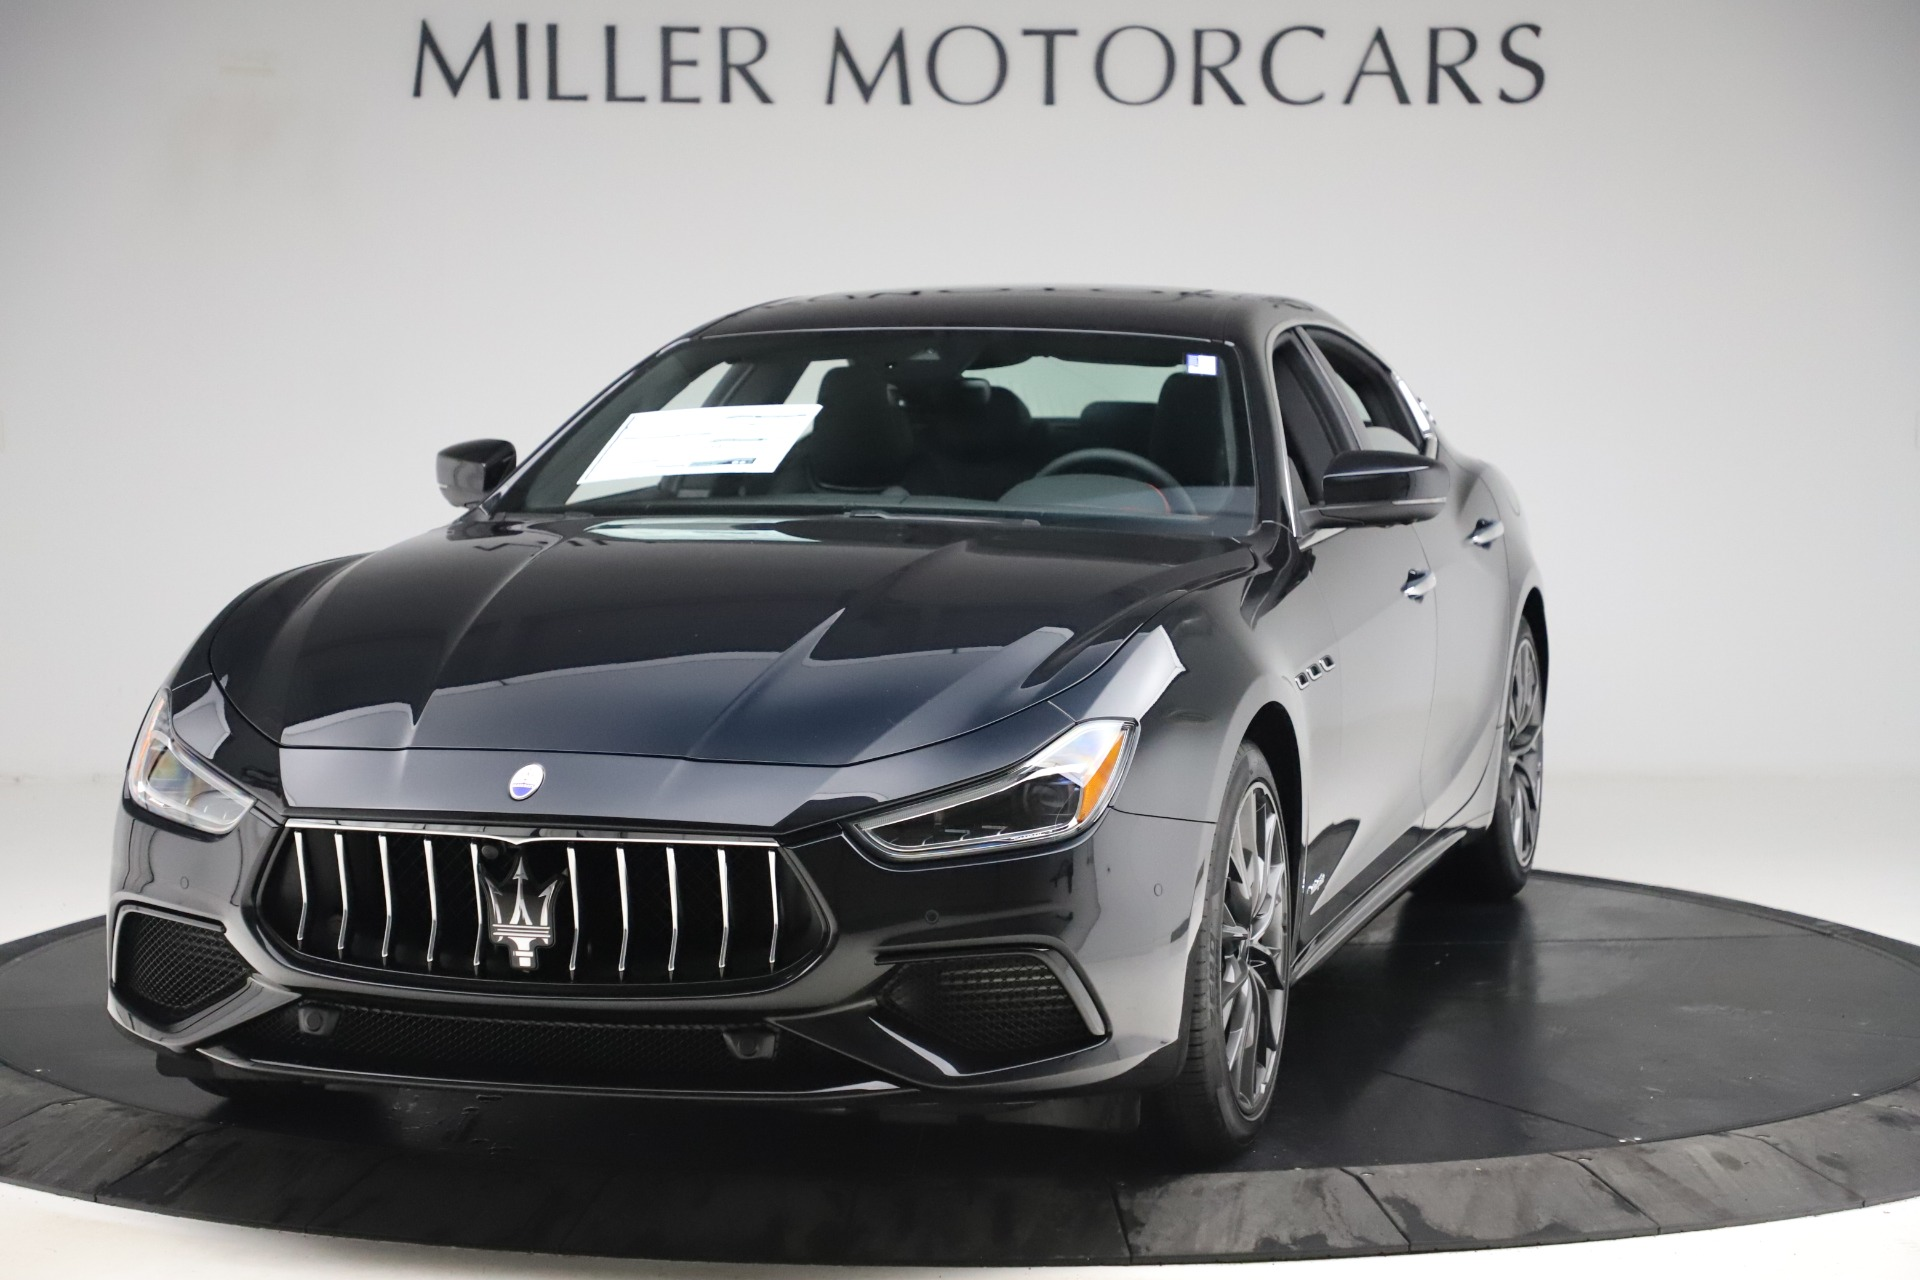 New 2019 Maserati Ghibli S Q4 GranSport for sale $99,905 at Bentley Greenwich in Greenwich CT 06830 1